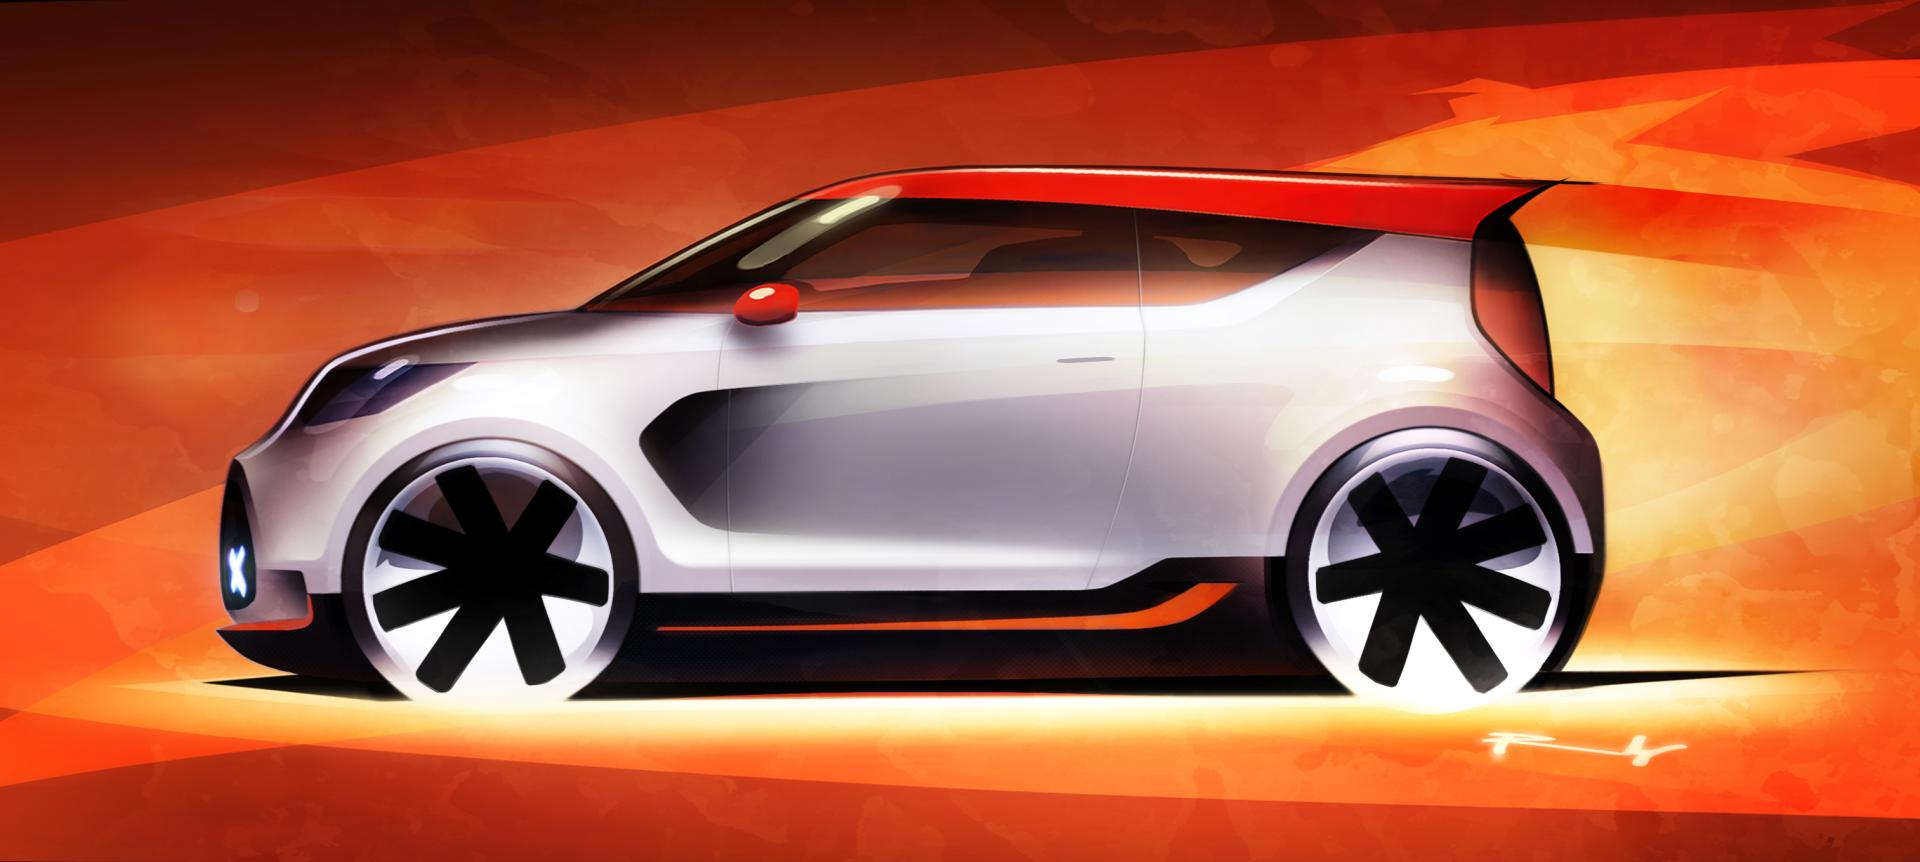 2012 Kia Trackster Concept News And Information Research